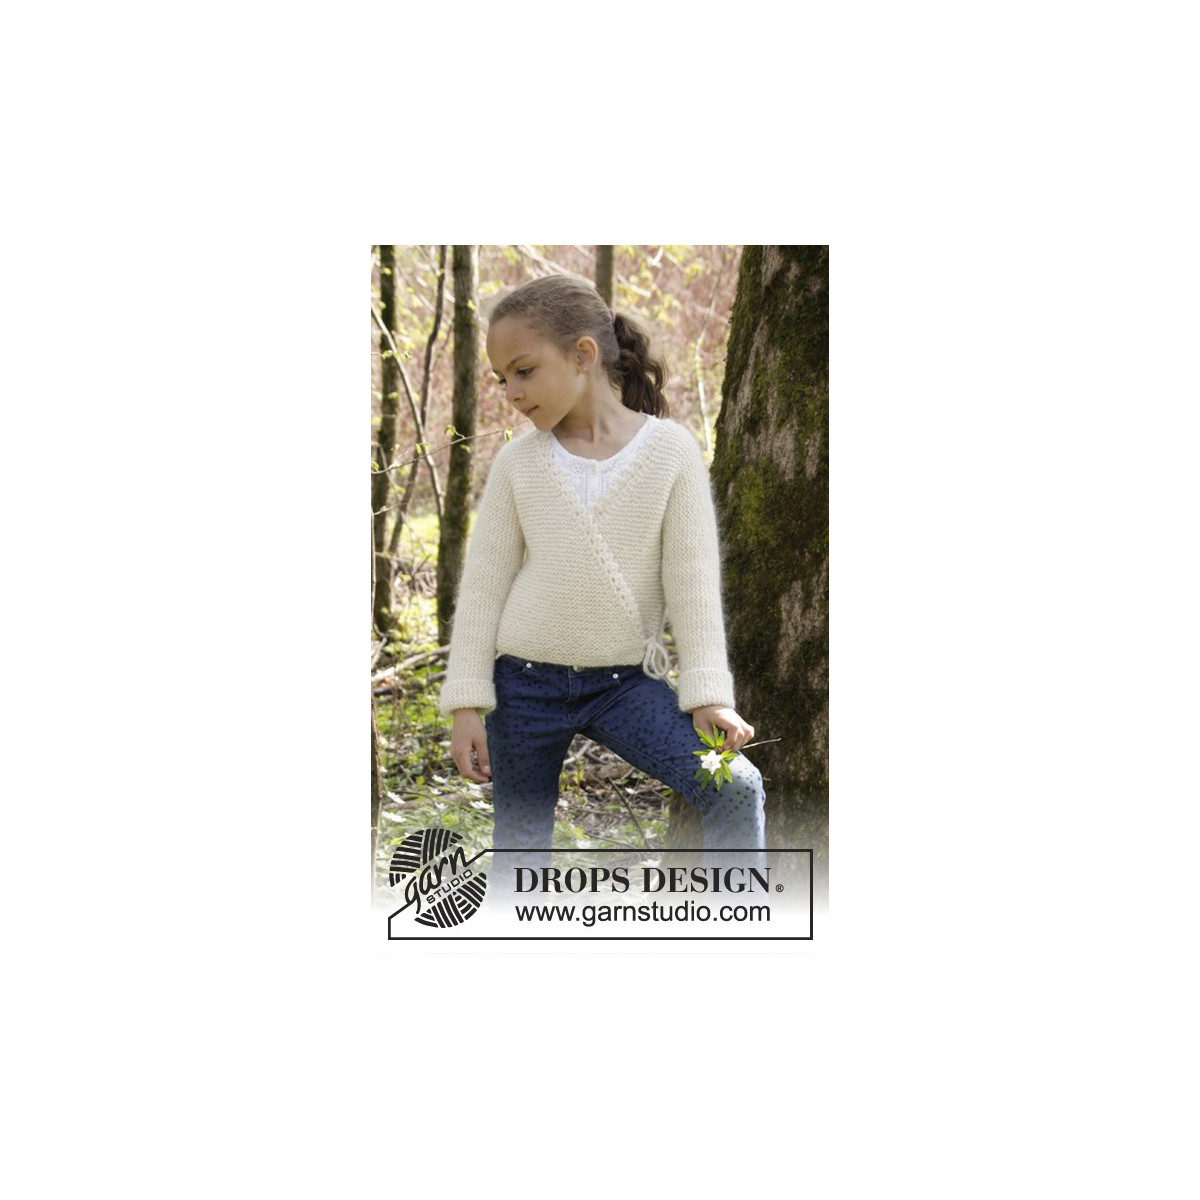 016797c3dc5d Titania by DROPS Design - Knitted Wrap Around Jacket in Garter Stitch  Pattern size 3 5 - 11 12 years - Ritohobby.co.uk